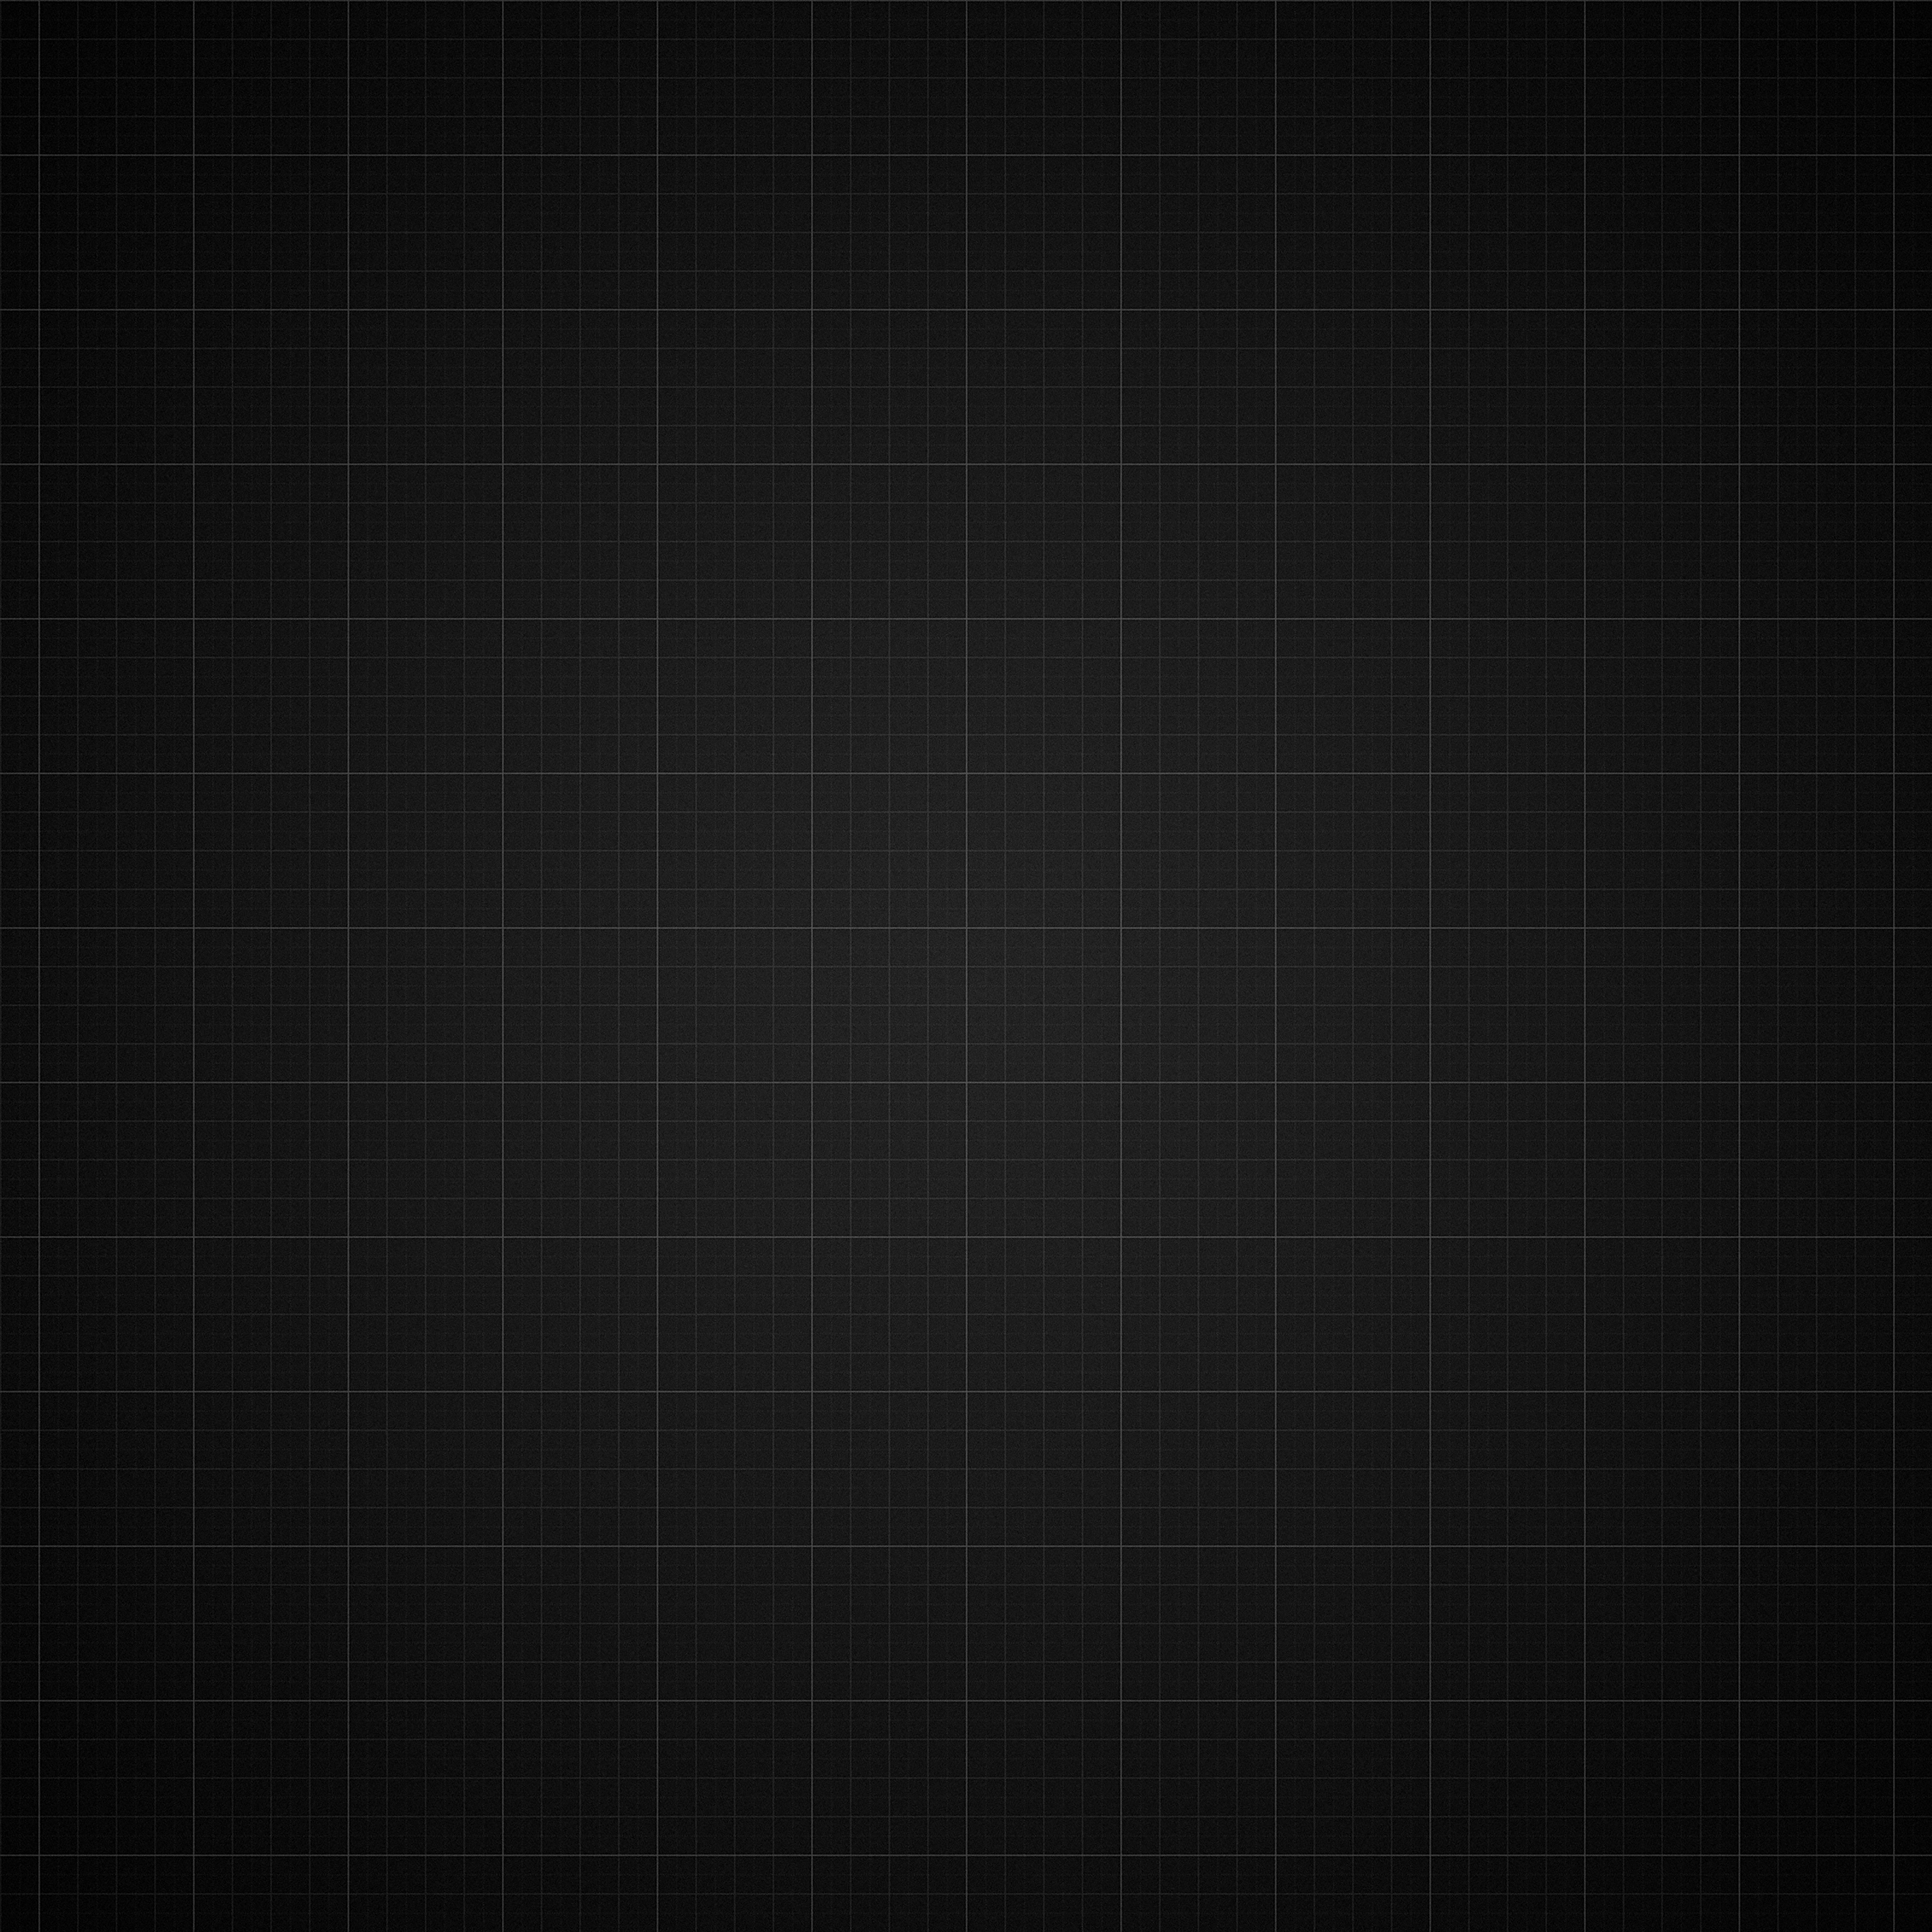 Androidpapers vc52 blueprint dark texture technical pattern large malvernweather Images